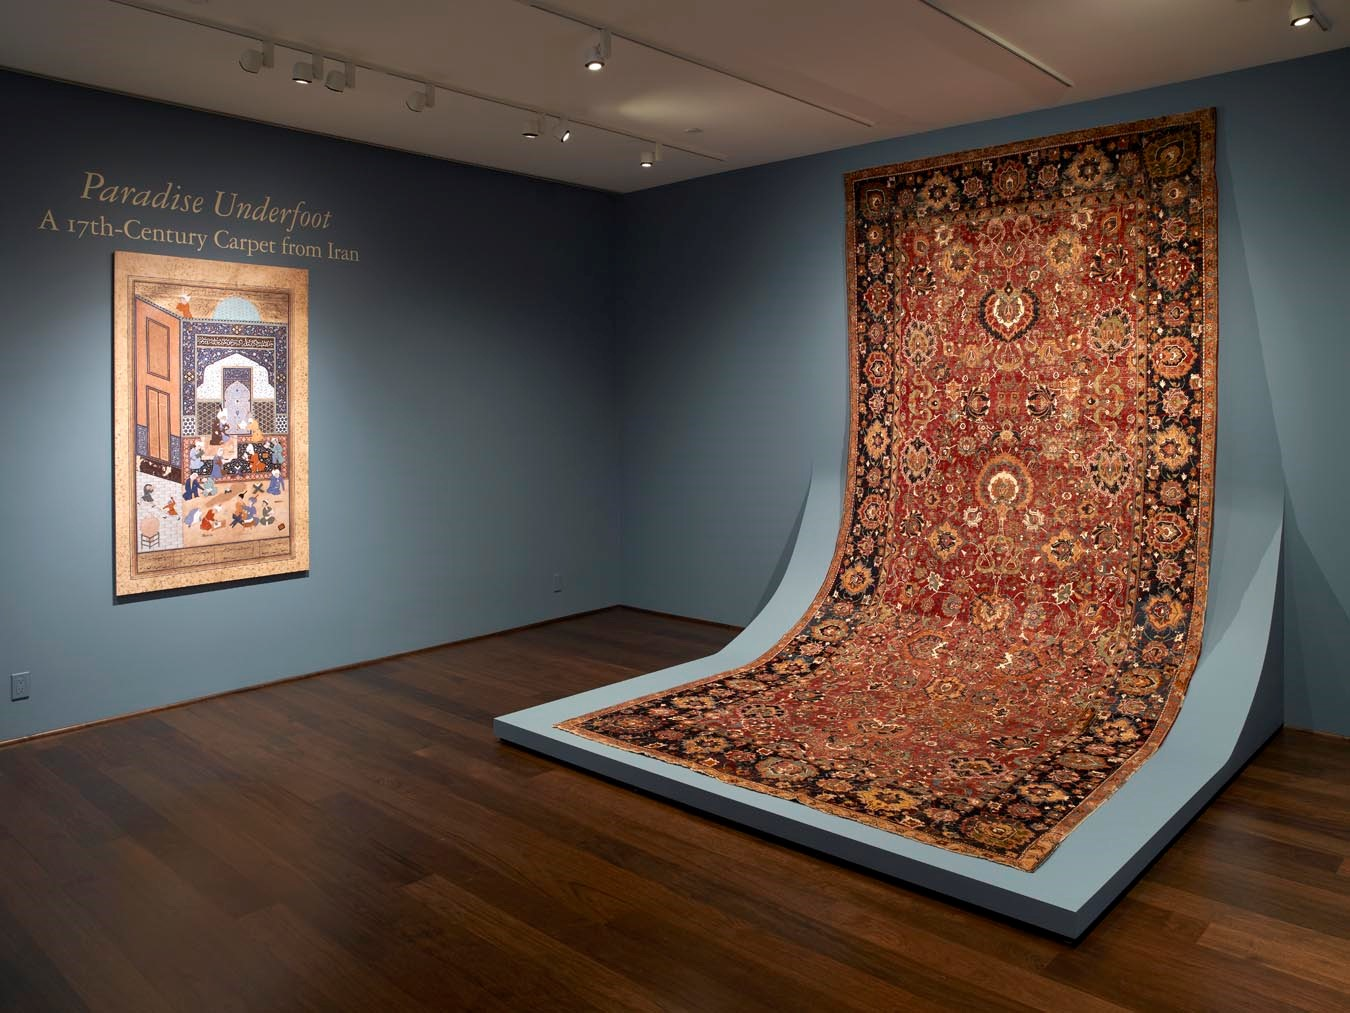 A 17th-Century Carpet from Iran